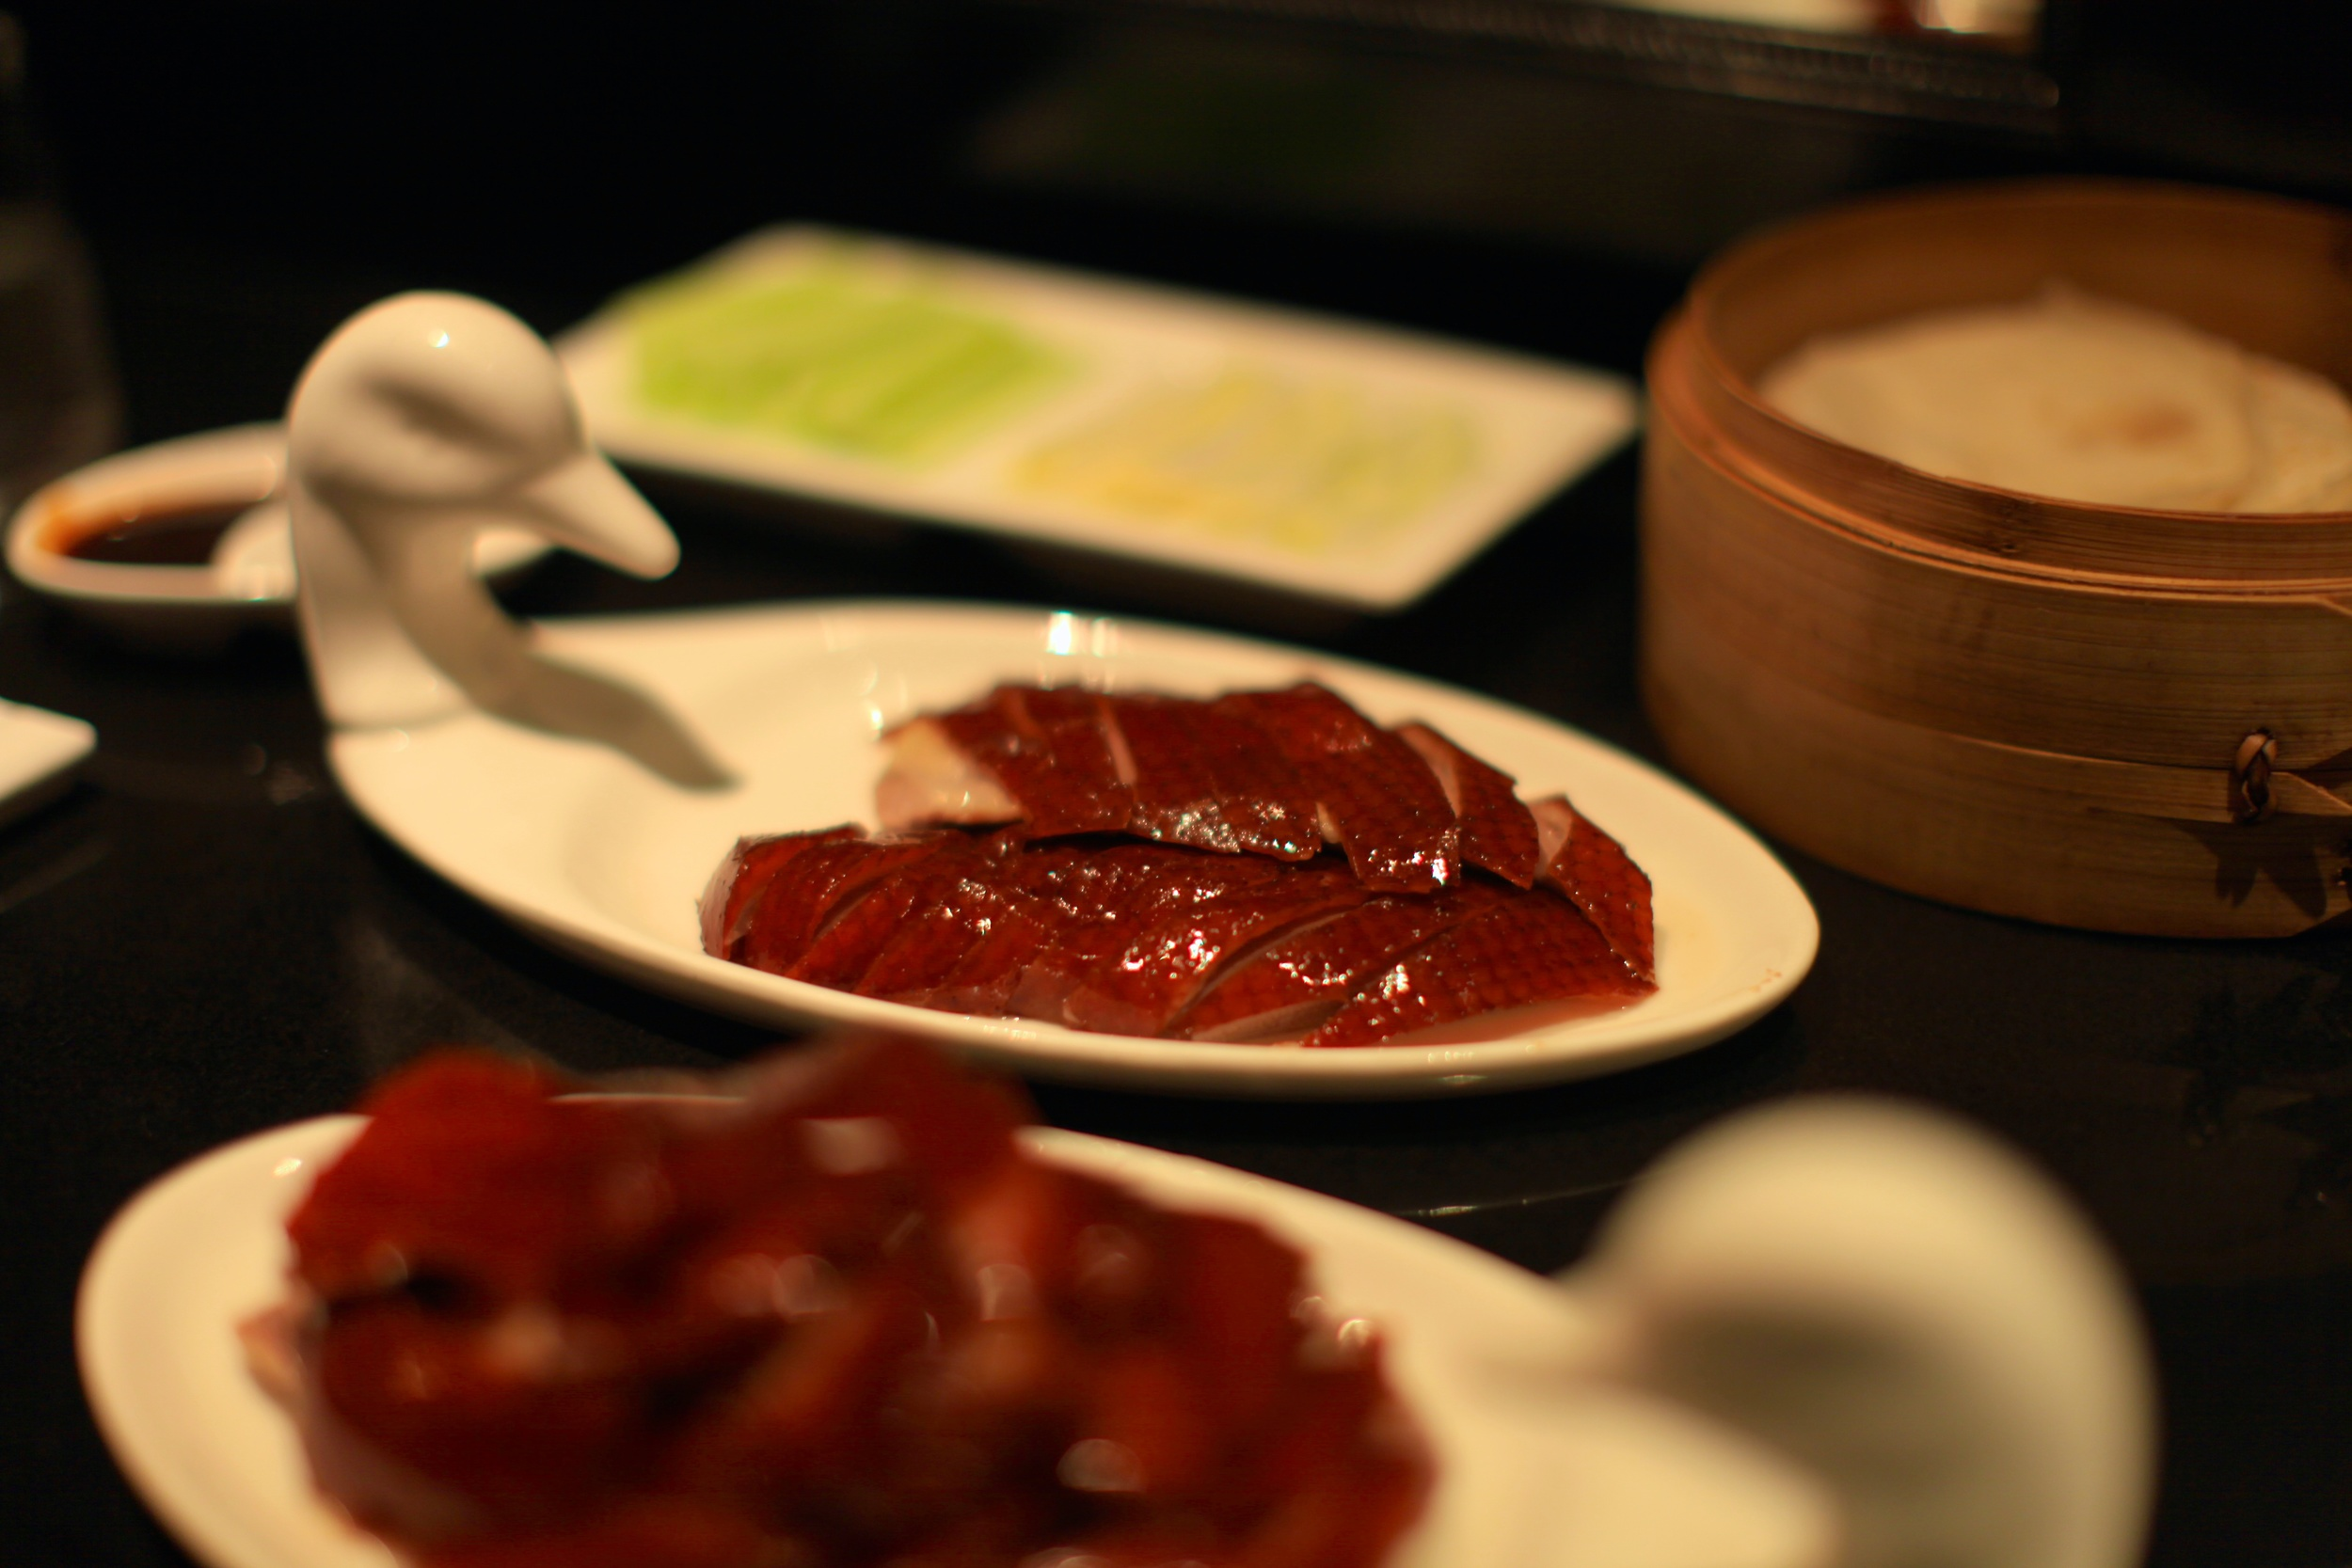 The meat is then carved and served in two plates,